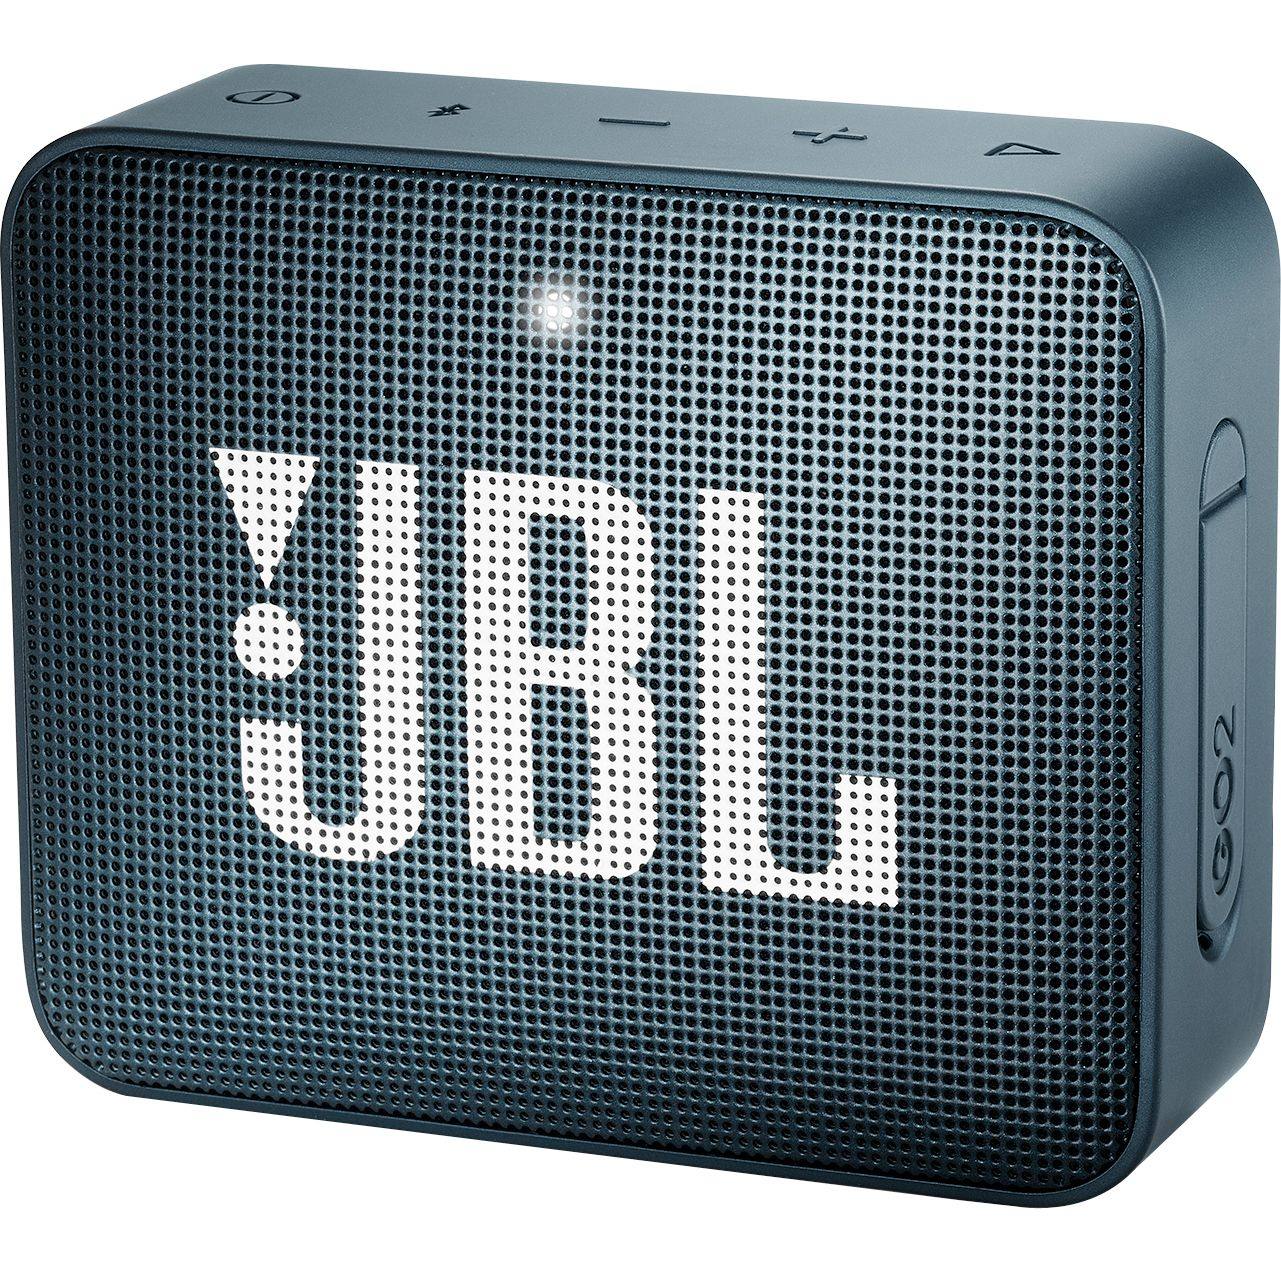 Boxa portabila JBL Go 2, Wireless, Bluetooth, IPX7 Waterproof, Slate Navy